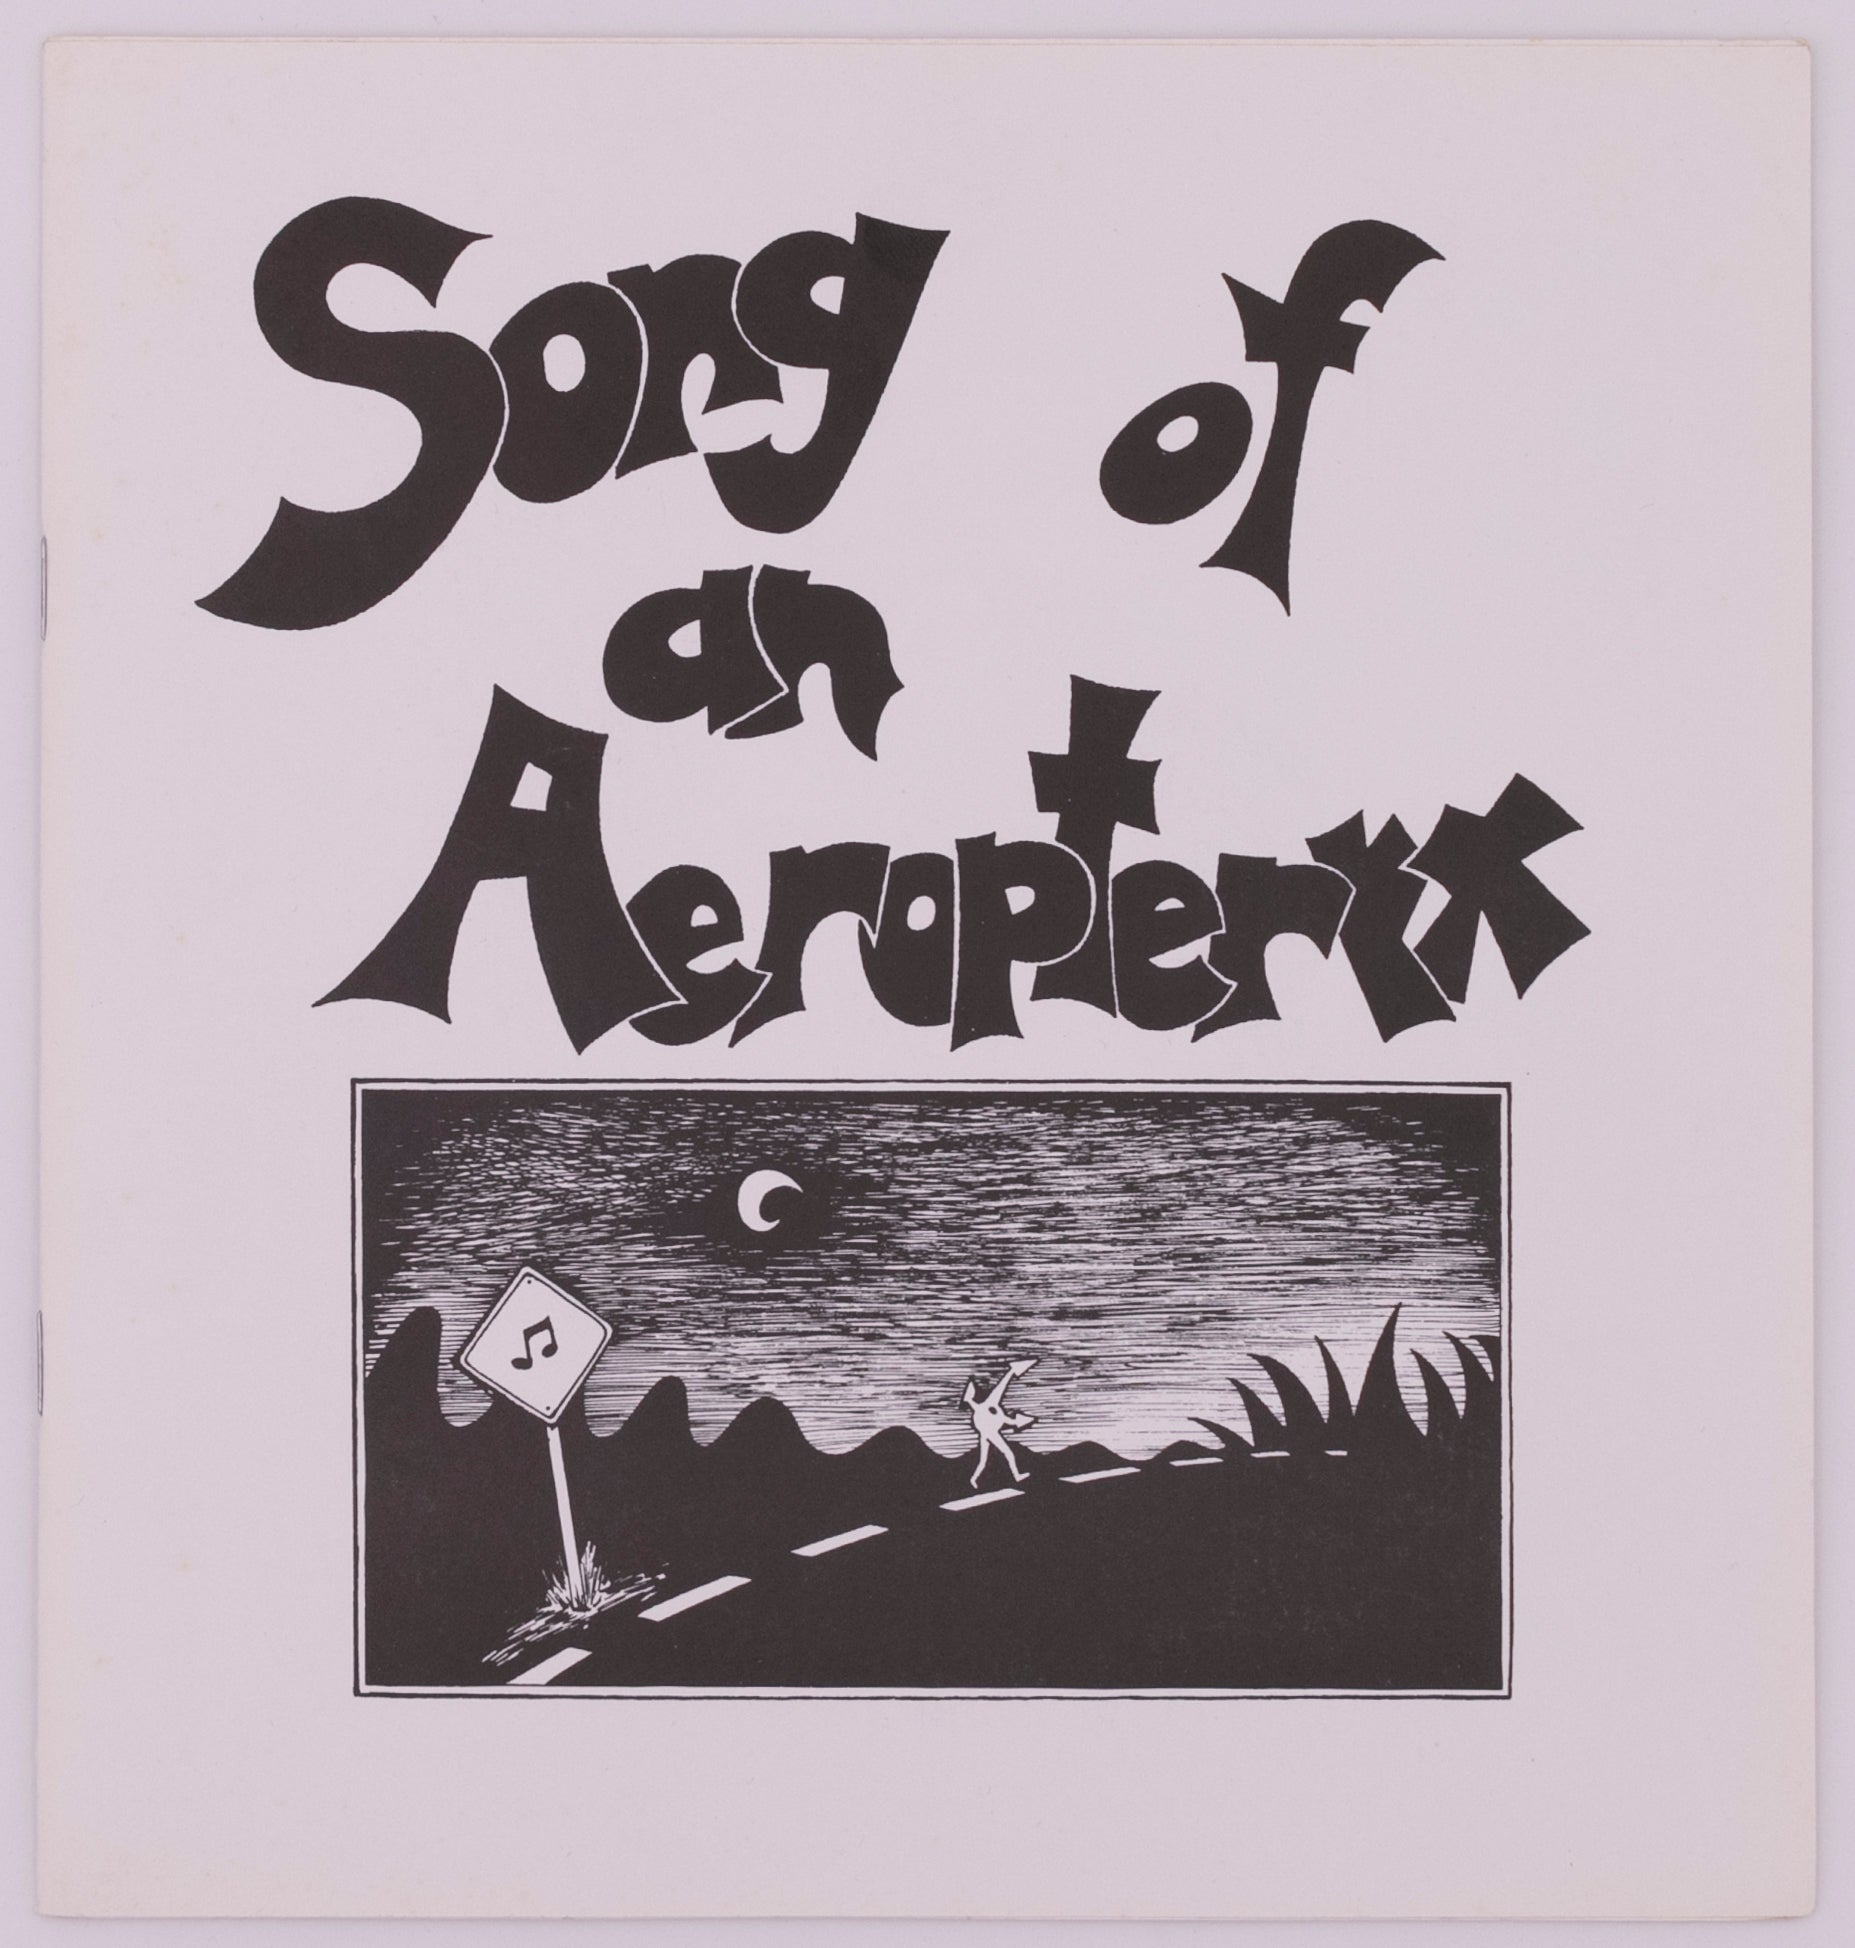 Song of an Aeropteryx